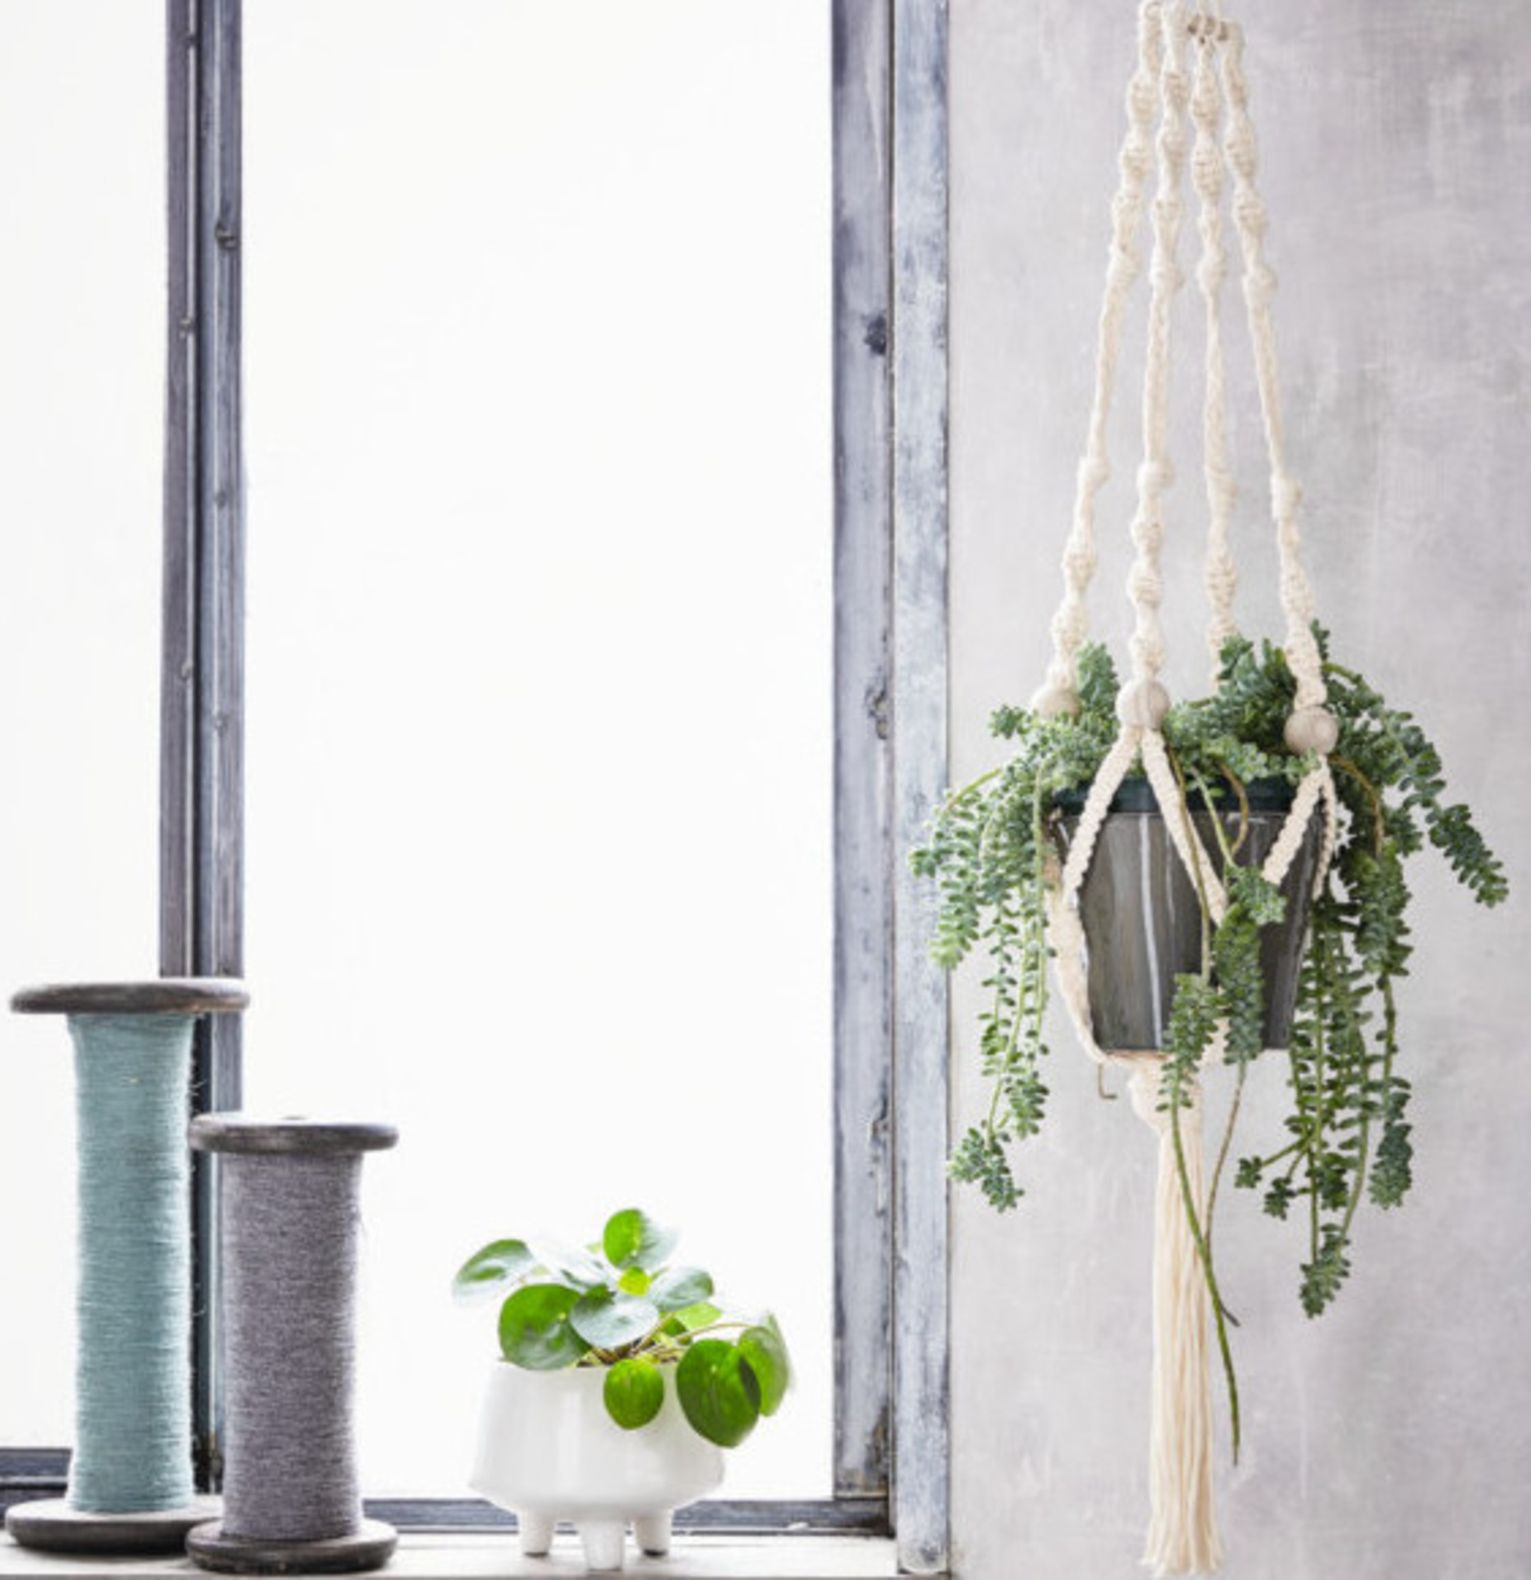 Kit DIY - Suspension en macramé déco